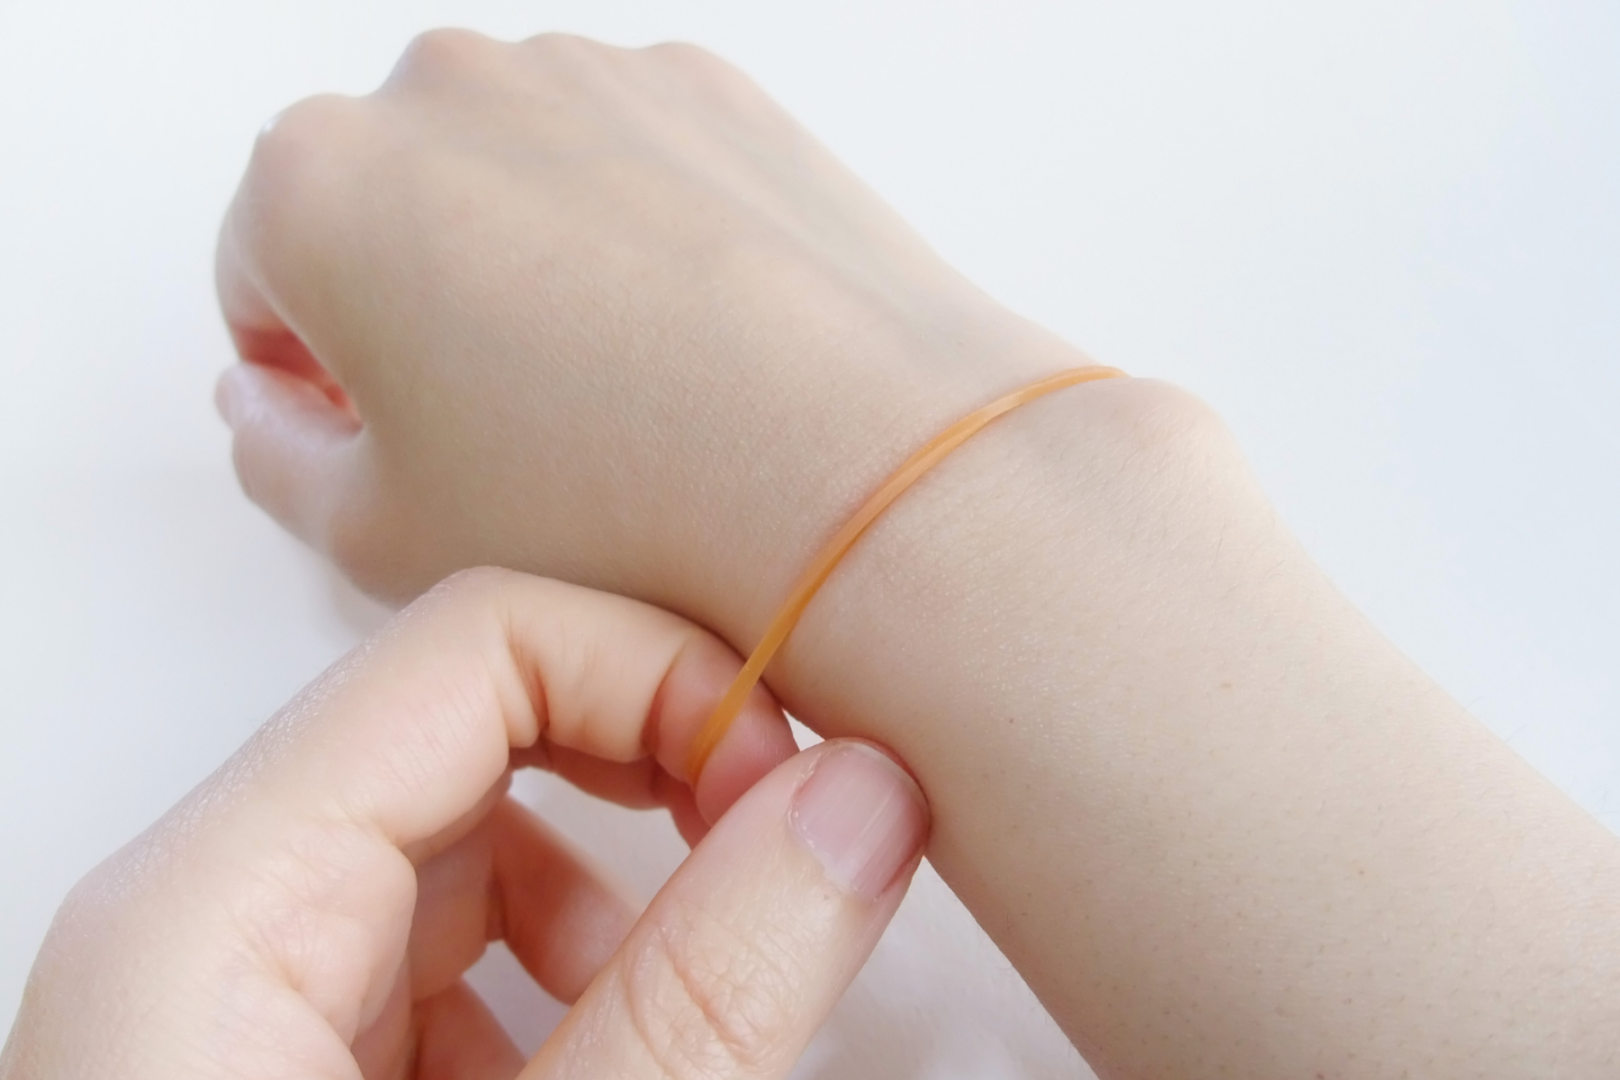 snapping rubber band on wrist self-harm